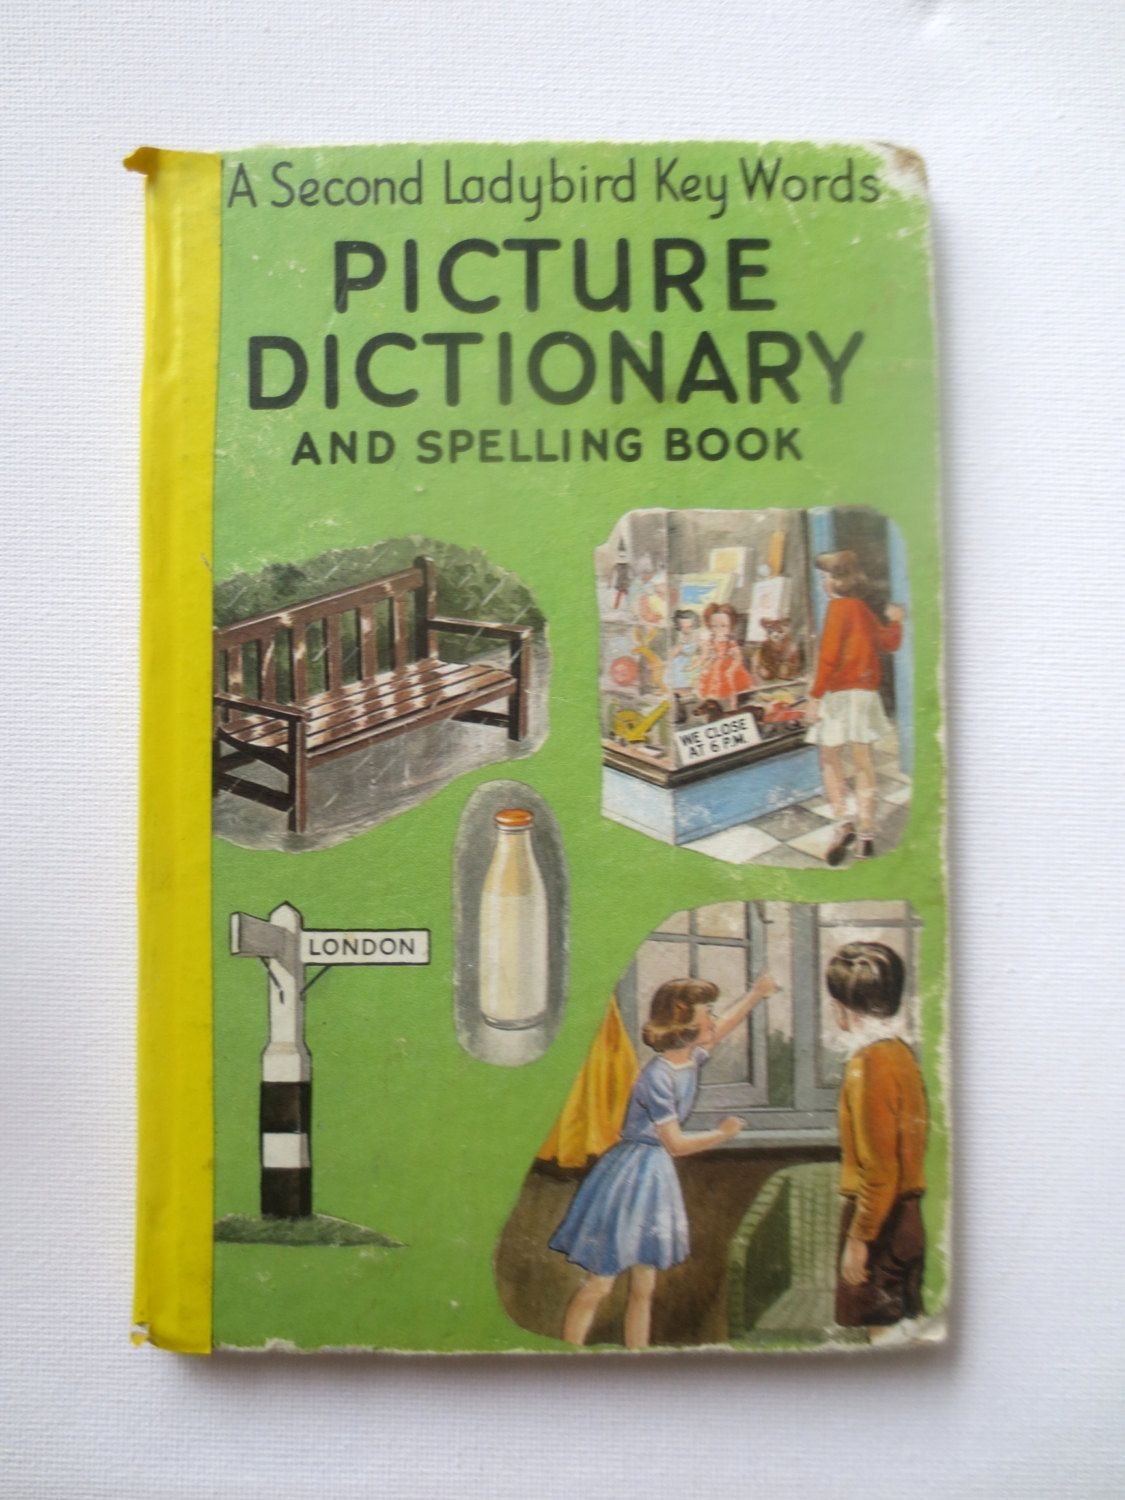 A Second Ladybird Key Words Picture Dictionary and Spelling Book (1966) by J. McNally - Vintage Children's Word Book